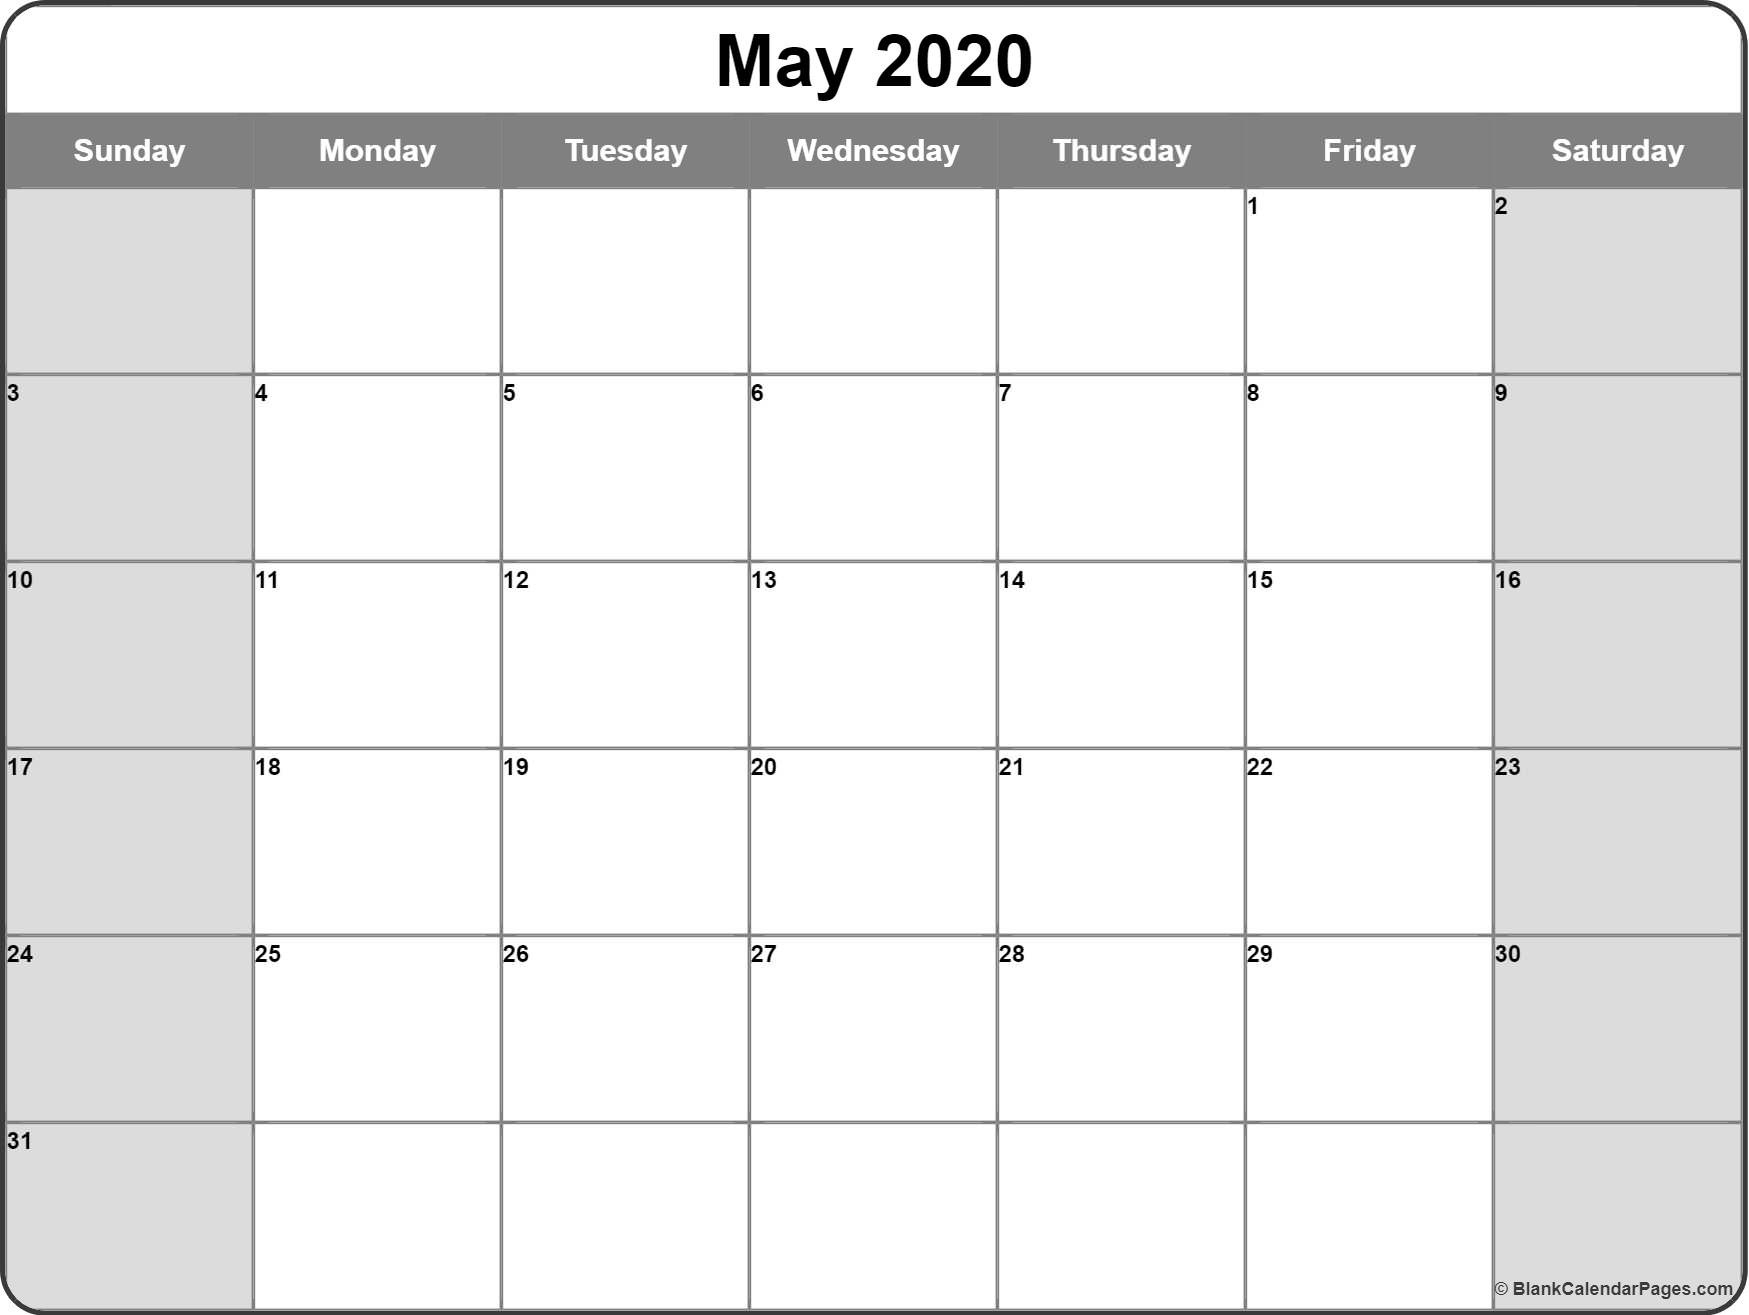 May 2020 Calendar | Free Printable Monthly Calendars  Calendar Month To Month Print